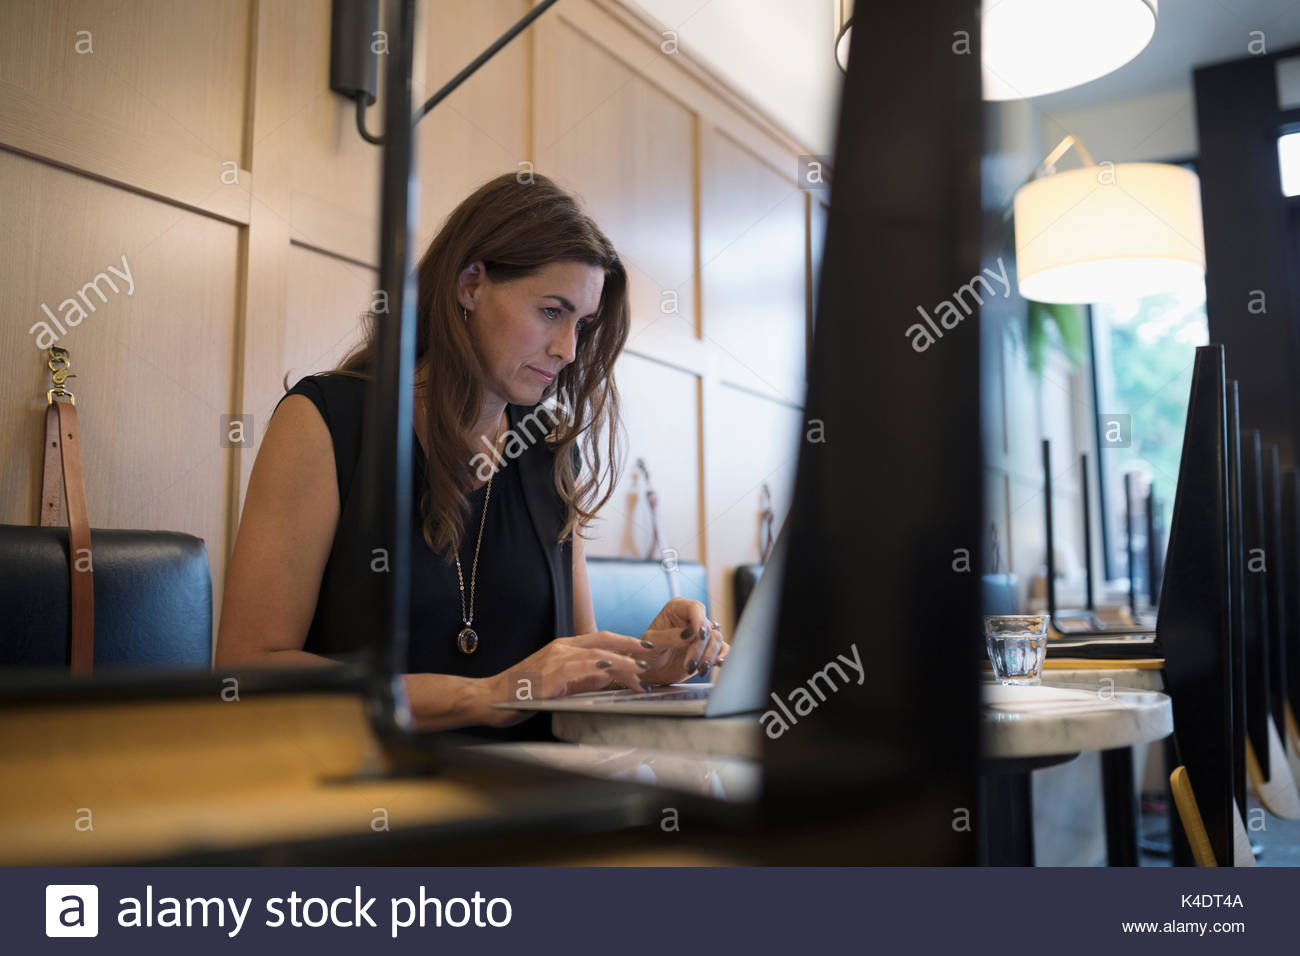 Focused female cafe owner working at laptop at table - Stock Image